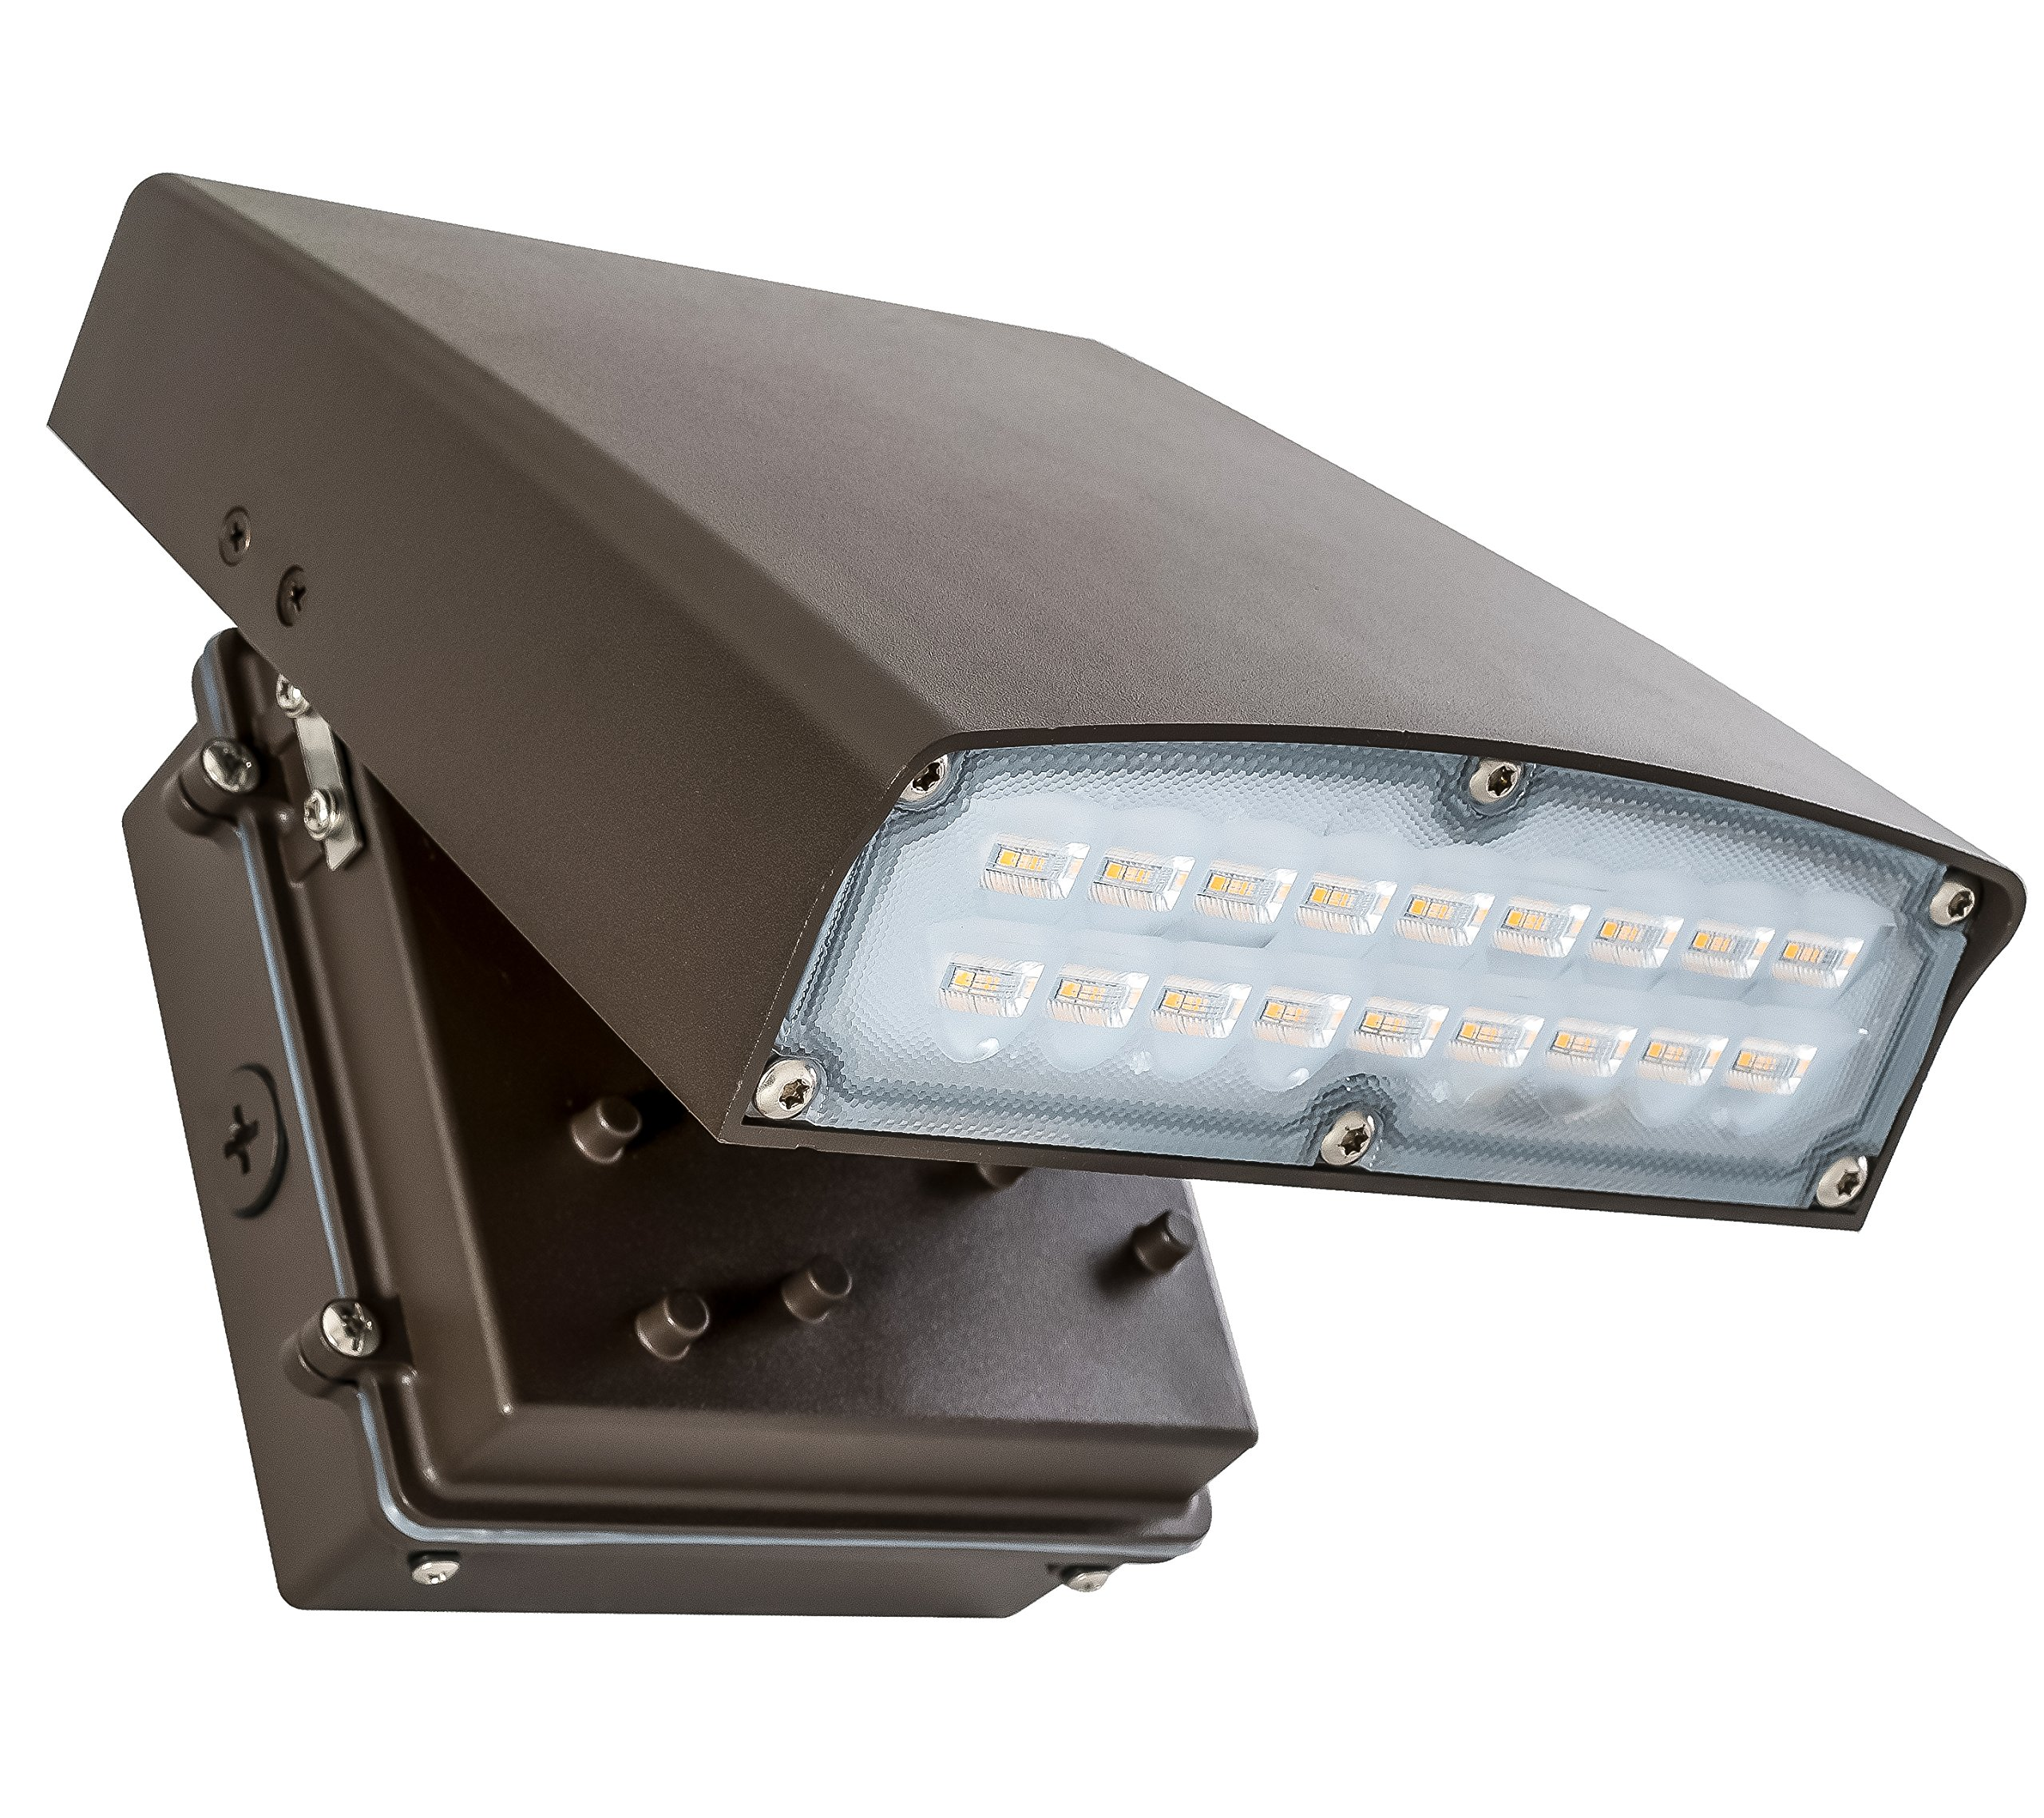 Westgate Lighting LED Adjustable Cutoff Wall Pack Outdoor Series – High Lumen – Waterproof IP54 – UL Listed DLC Approved – 120-277V – 7 Year Warranty (20W, 5000K Cool White)